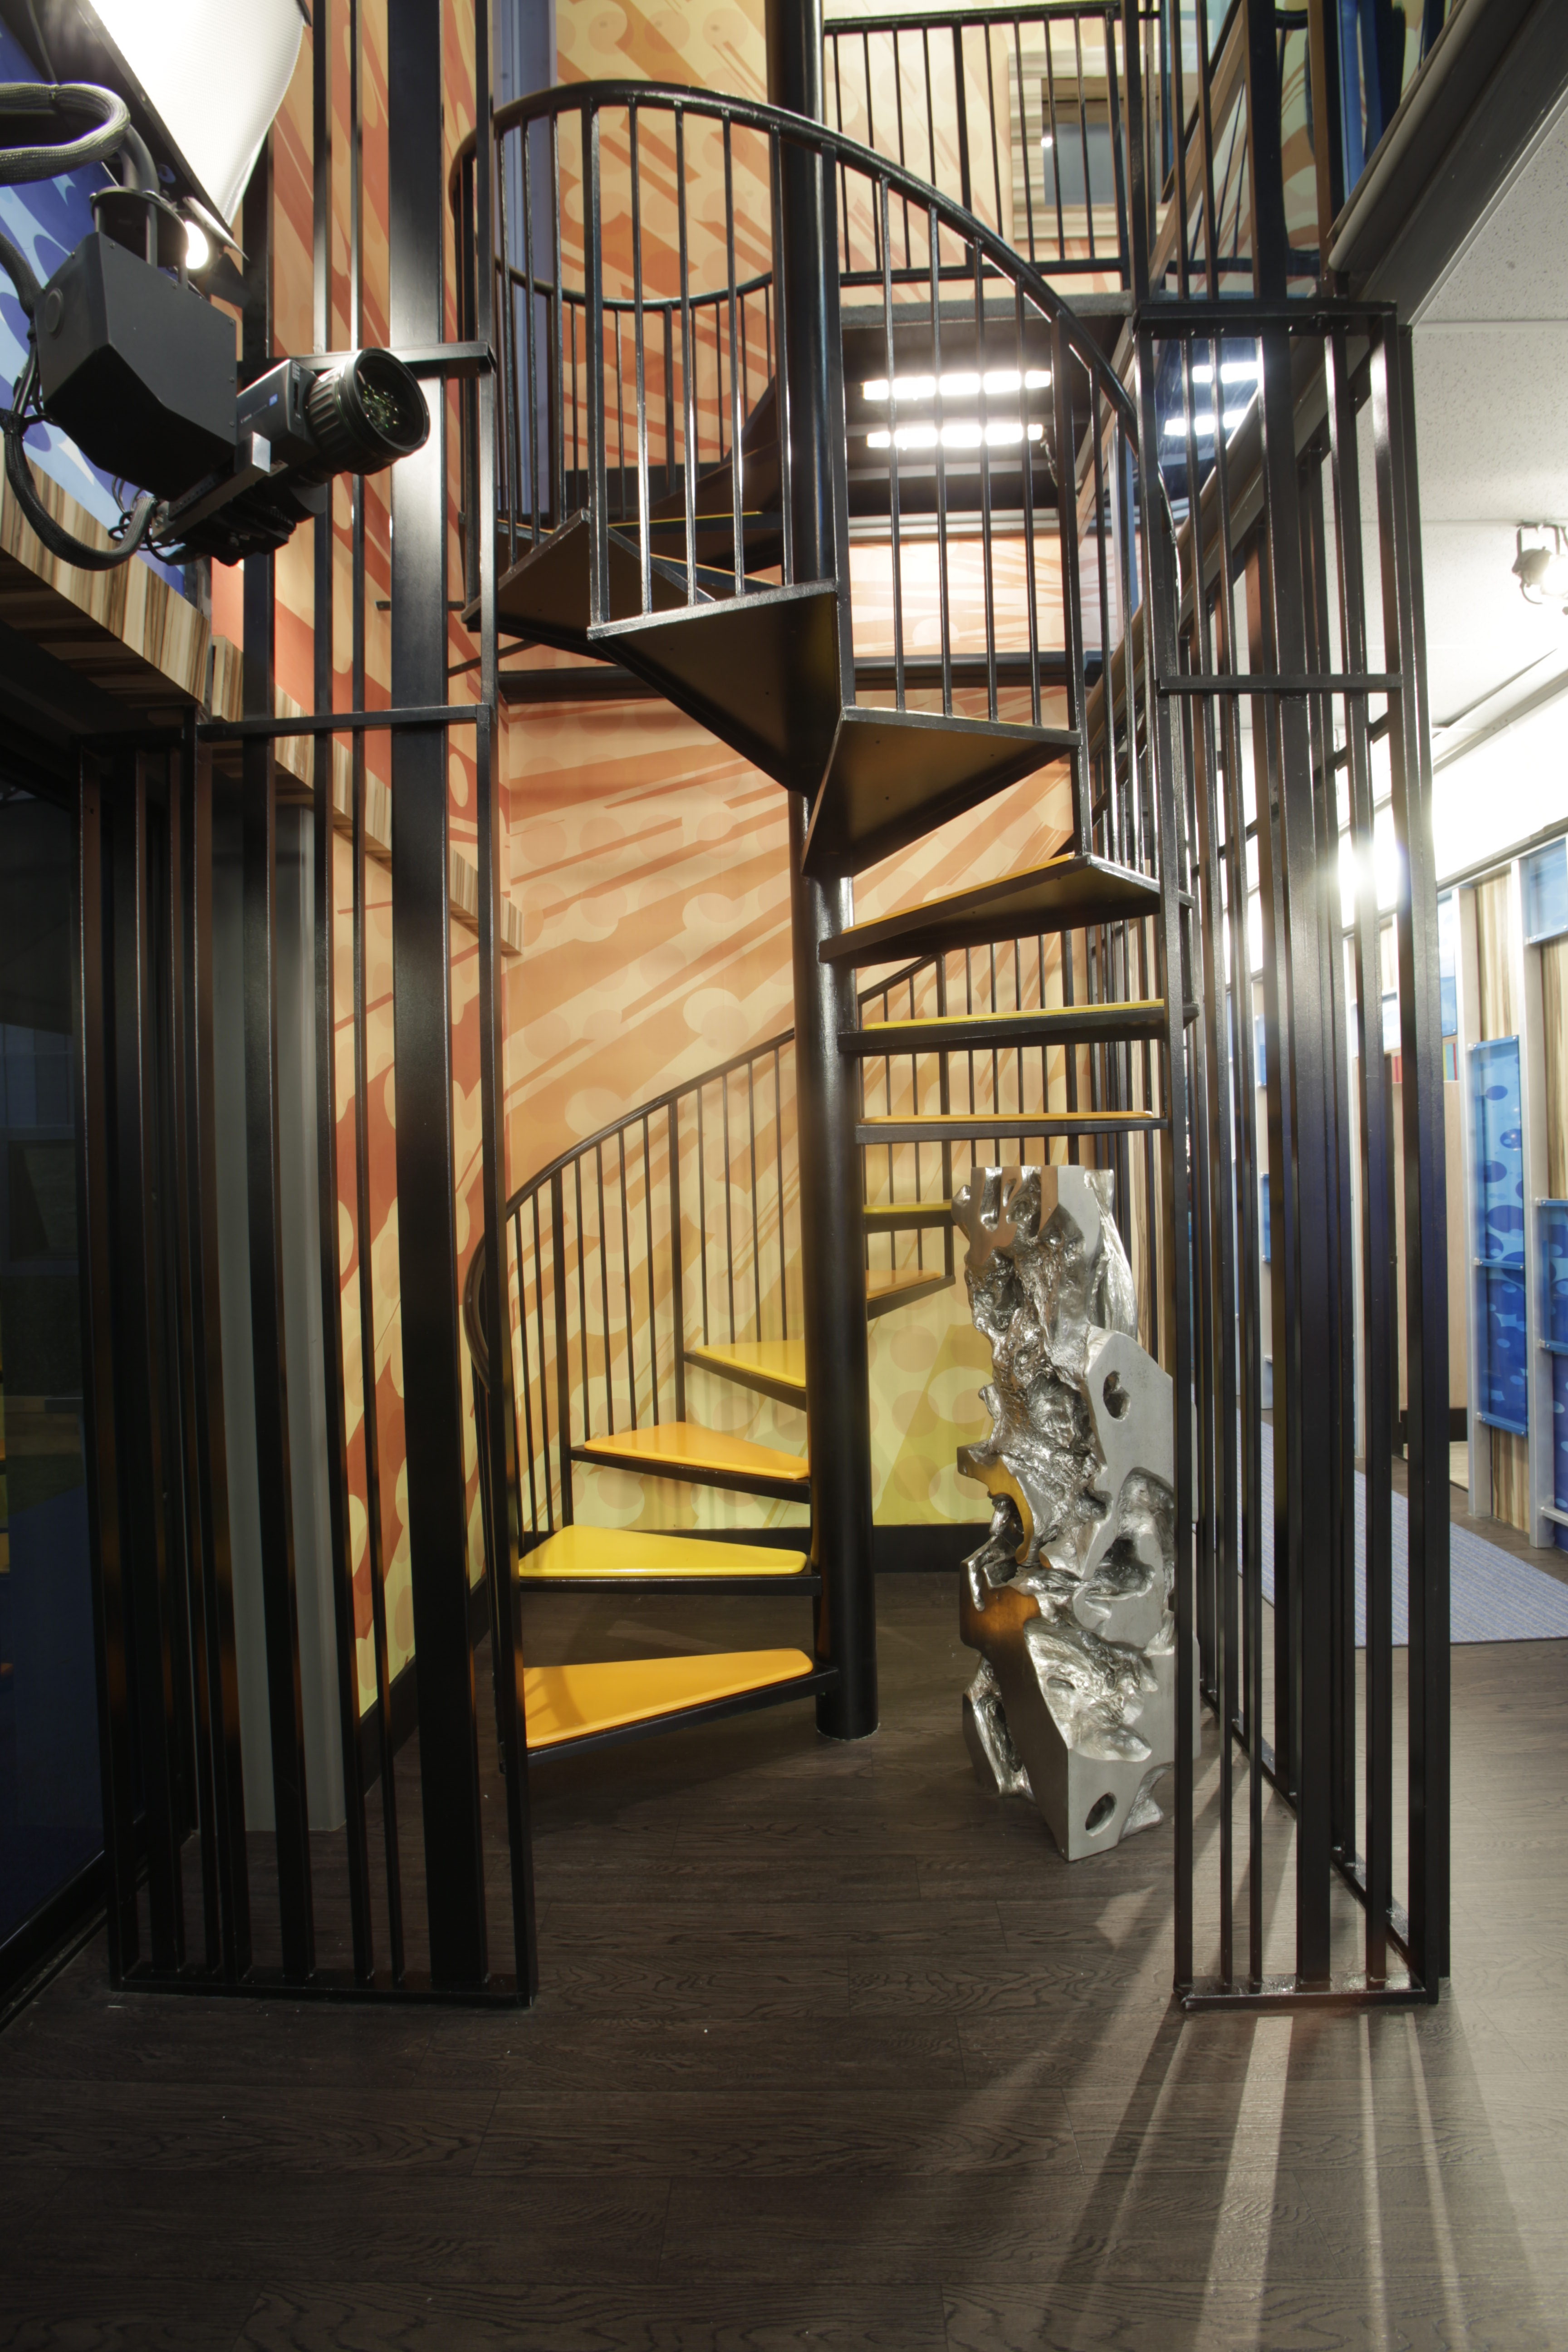 A winding staircase connects the two floors.